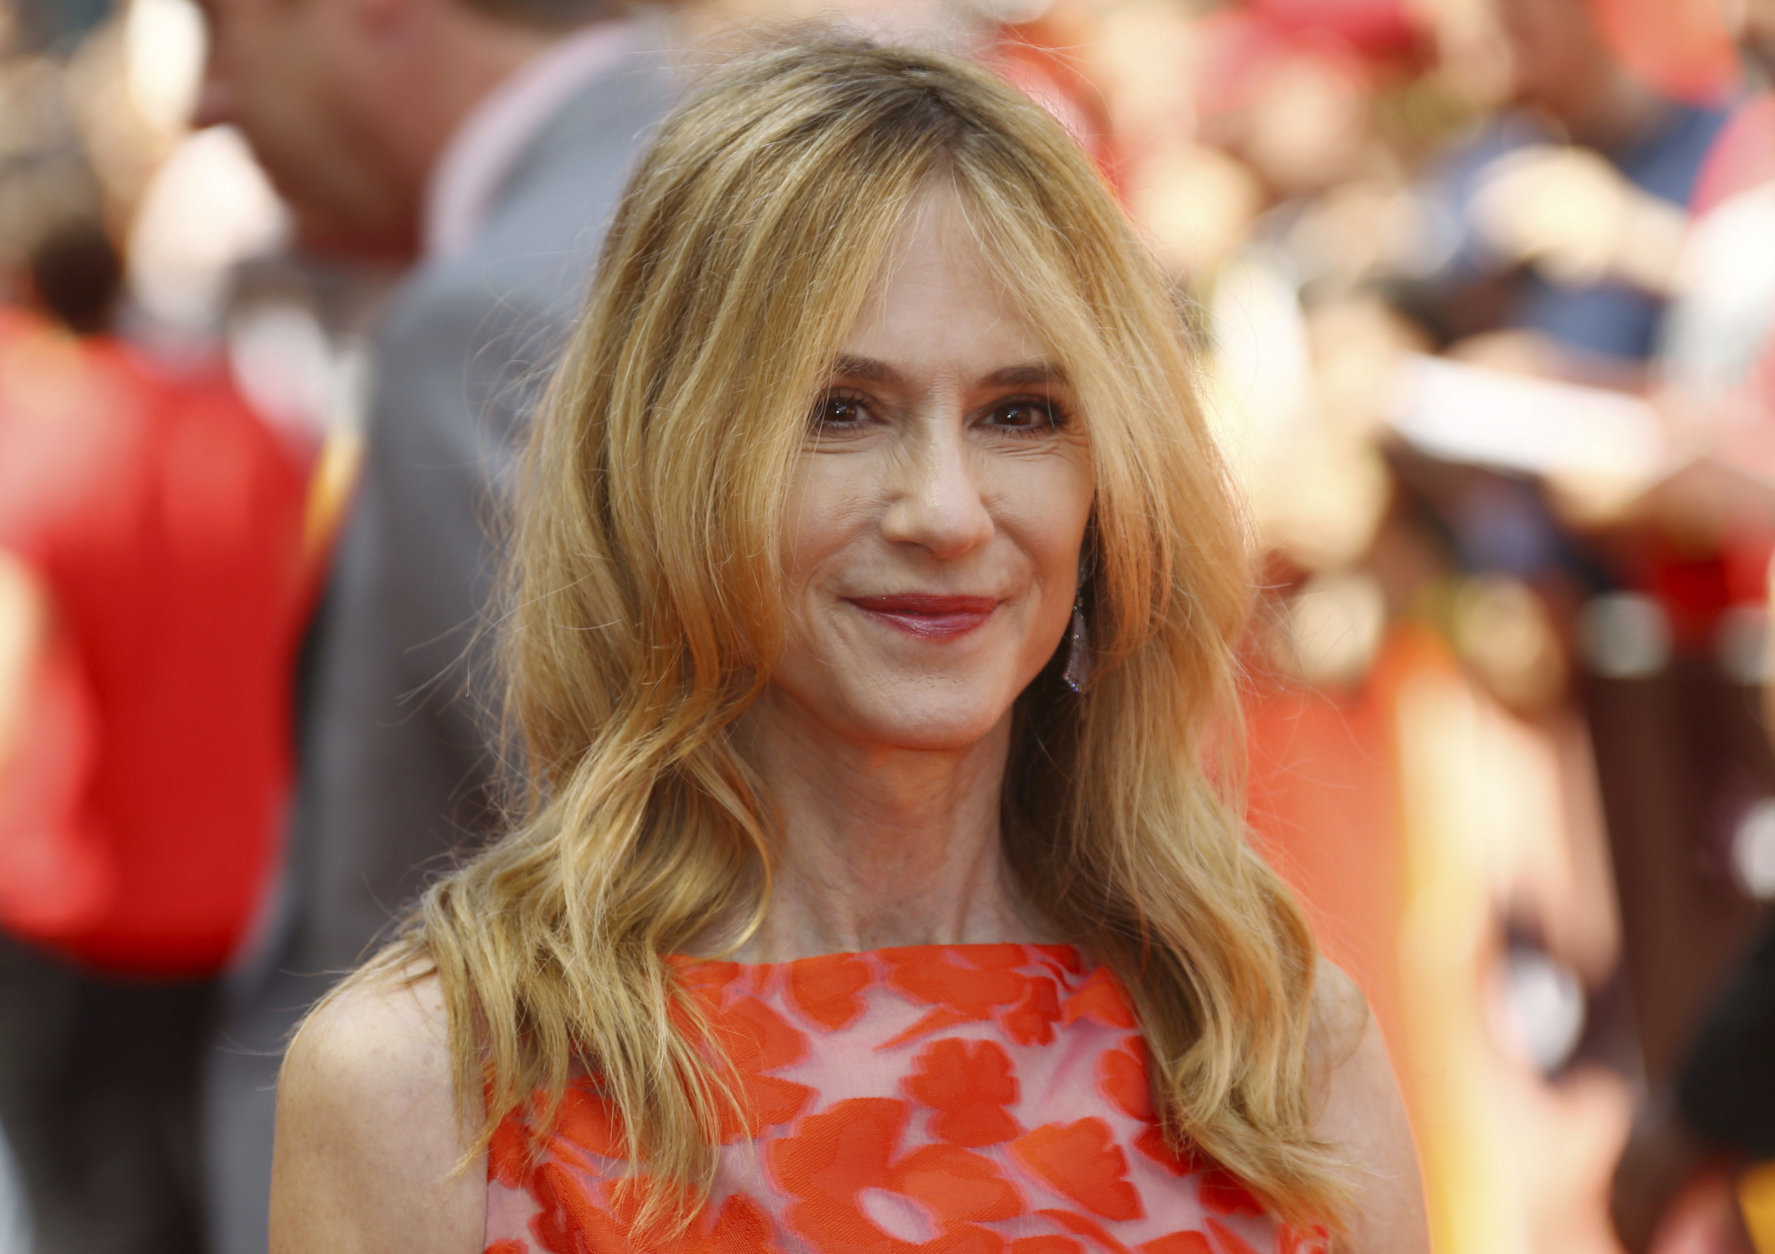 Actress Holly Hunter poses for photographers upon arrival at the UK premiere of Incredibles 2 in central London, Sunday, July 8, 2018. (Photo by Joel C Ryan/Invision/AP)